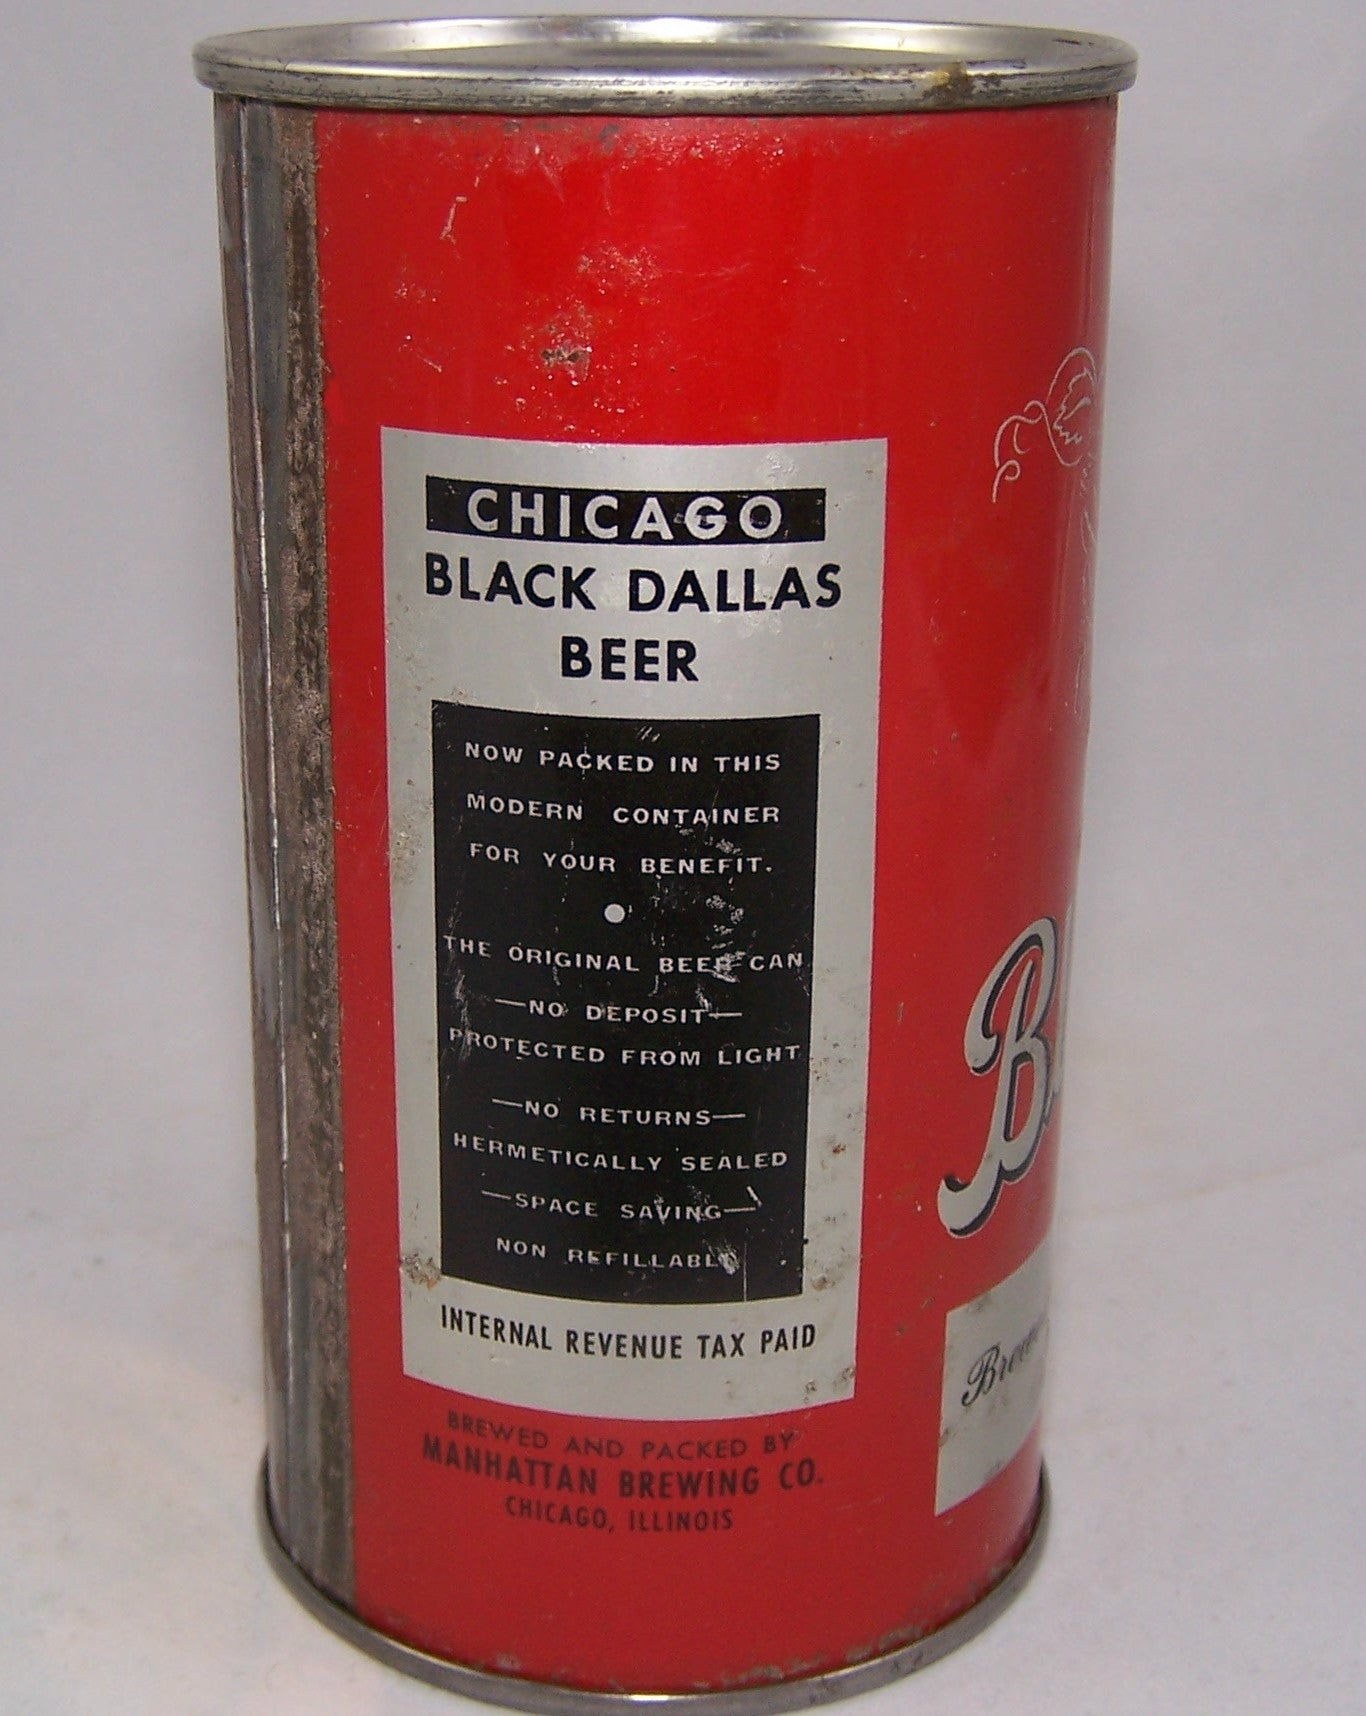 Chicago Black Dallas (Blacked out) Lilek # 113, Grade 1 -/2+Sold on 10/14/15